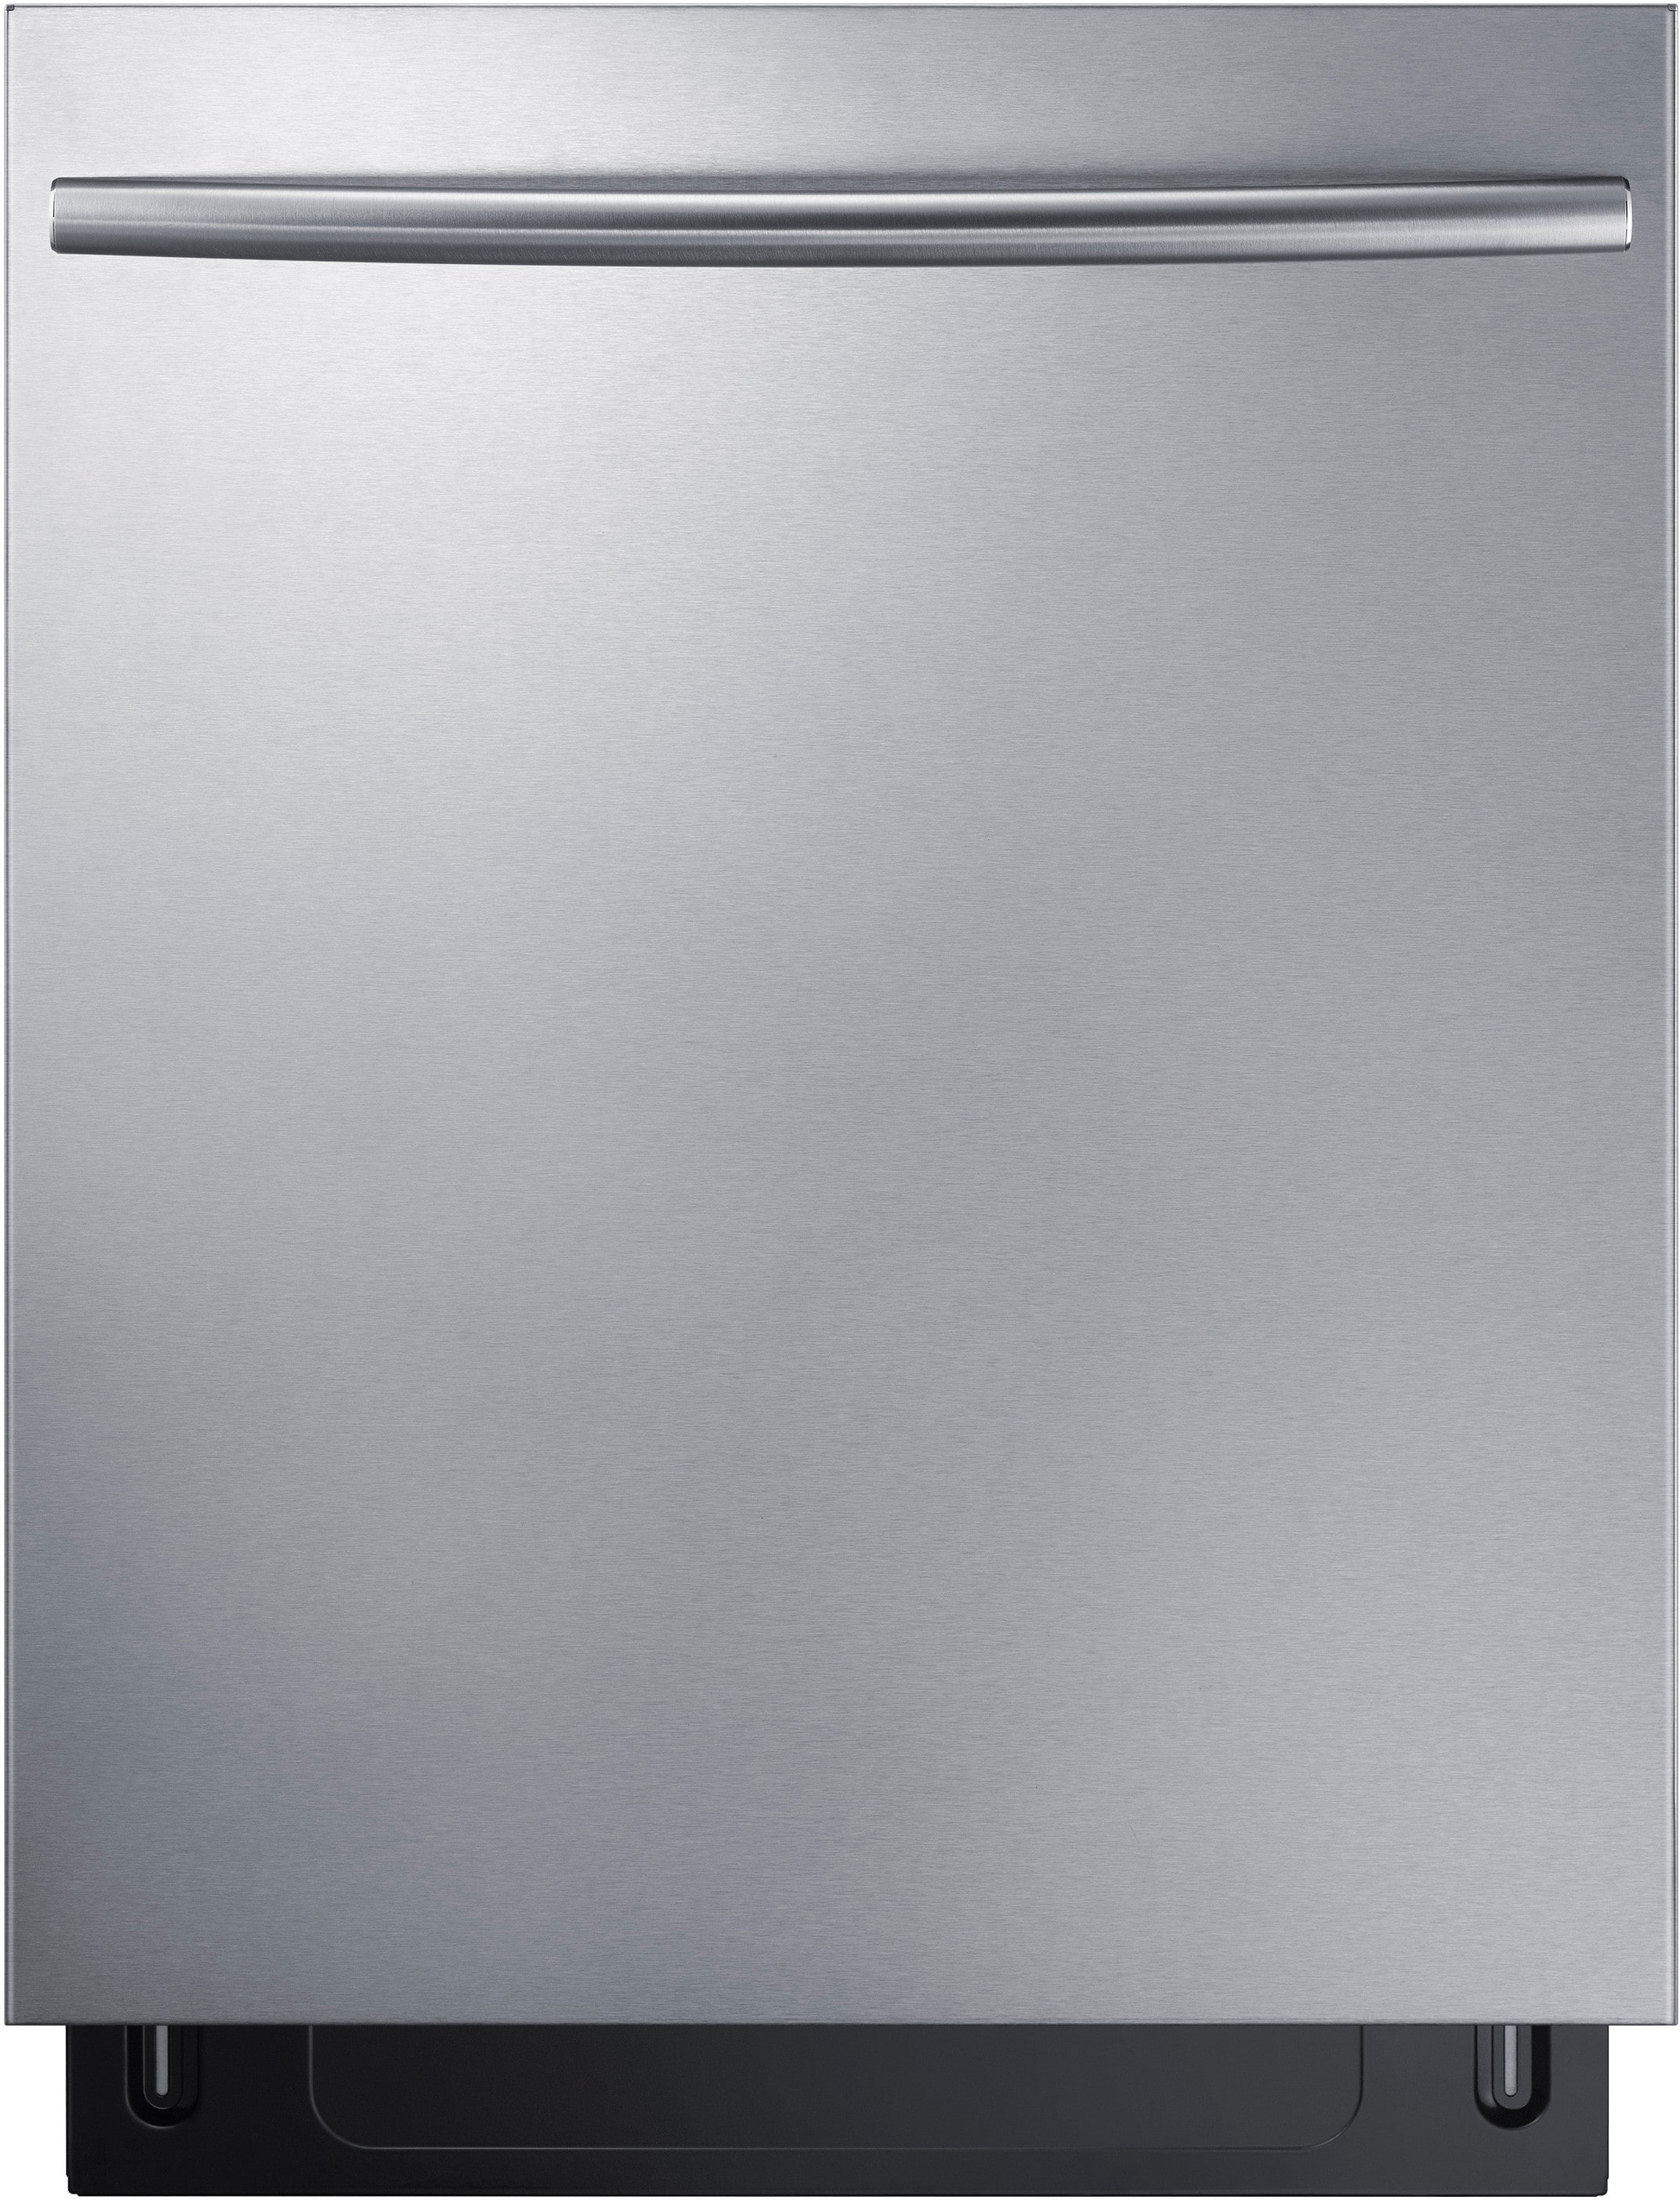 How To Clean The Inside Of A Stainless Steel Dishwasher Samsung Dw80k7050us Fully Integrated Dishwasher With 3rd Rack